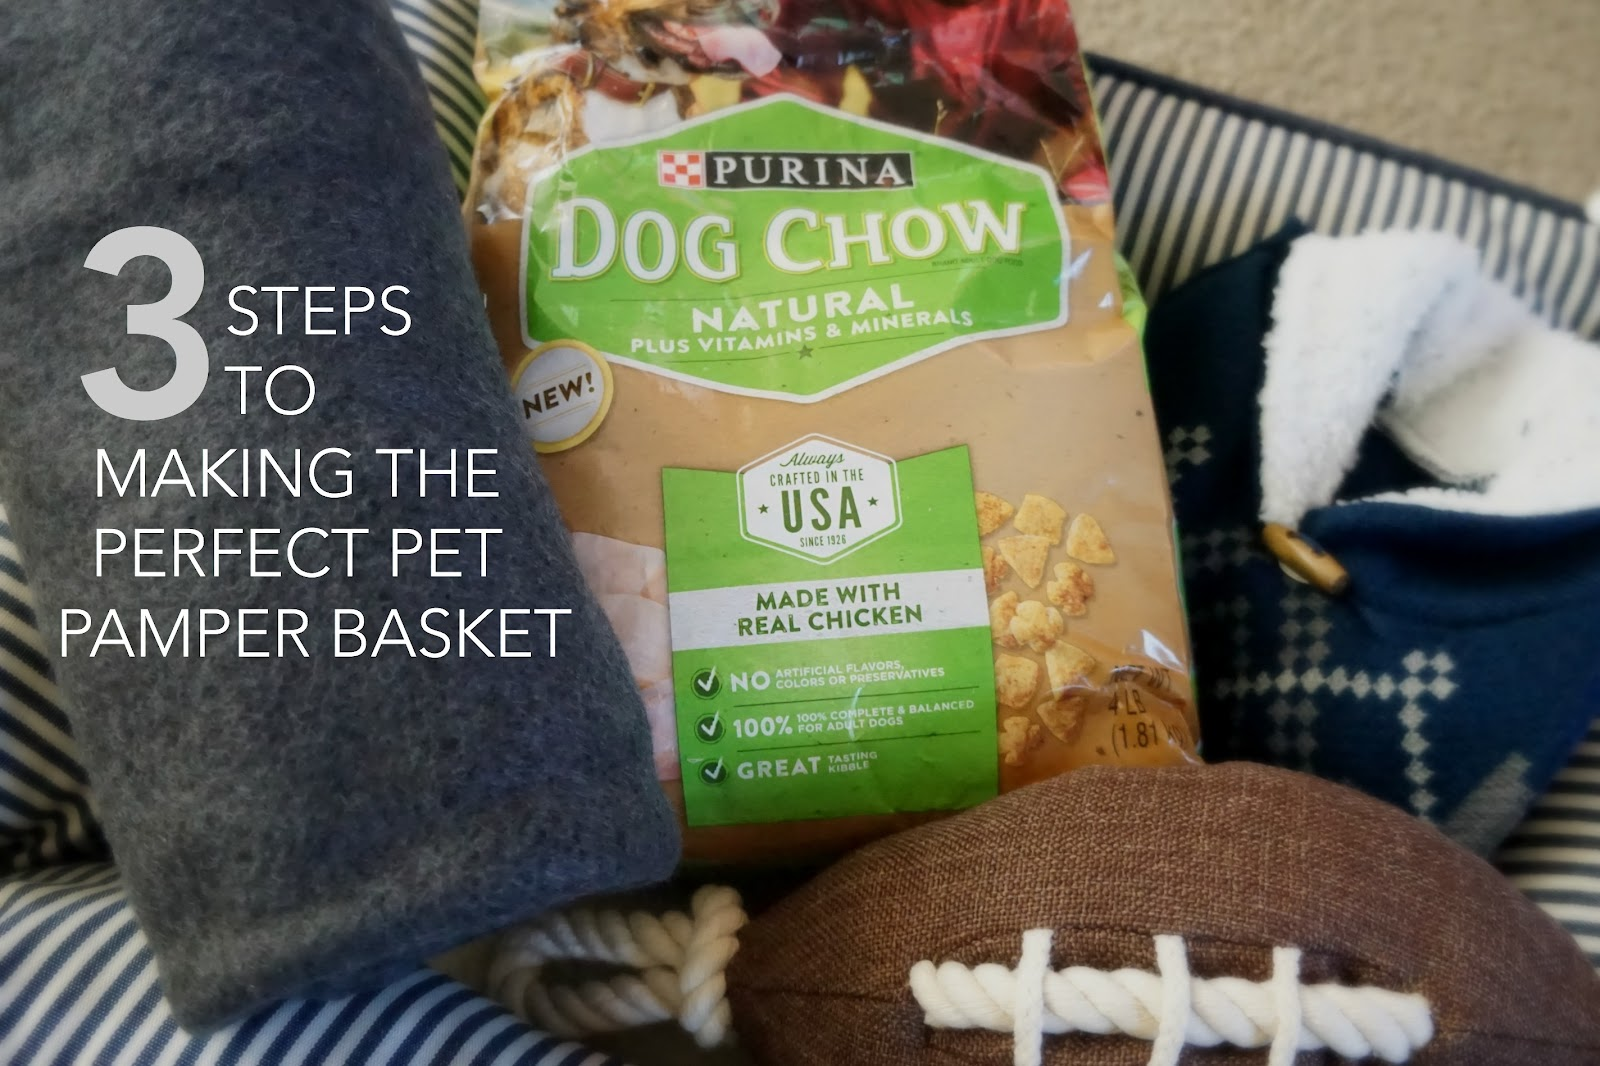 three-step-pet-pamper-basket-gift.jpg